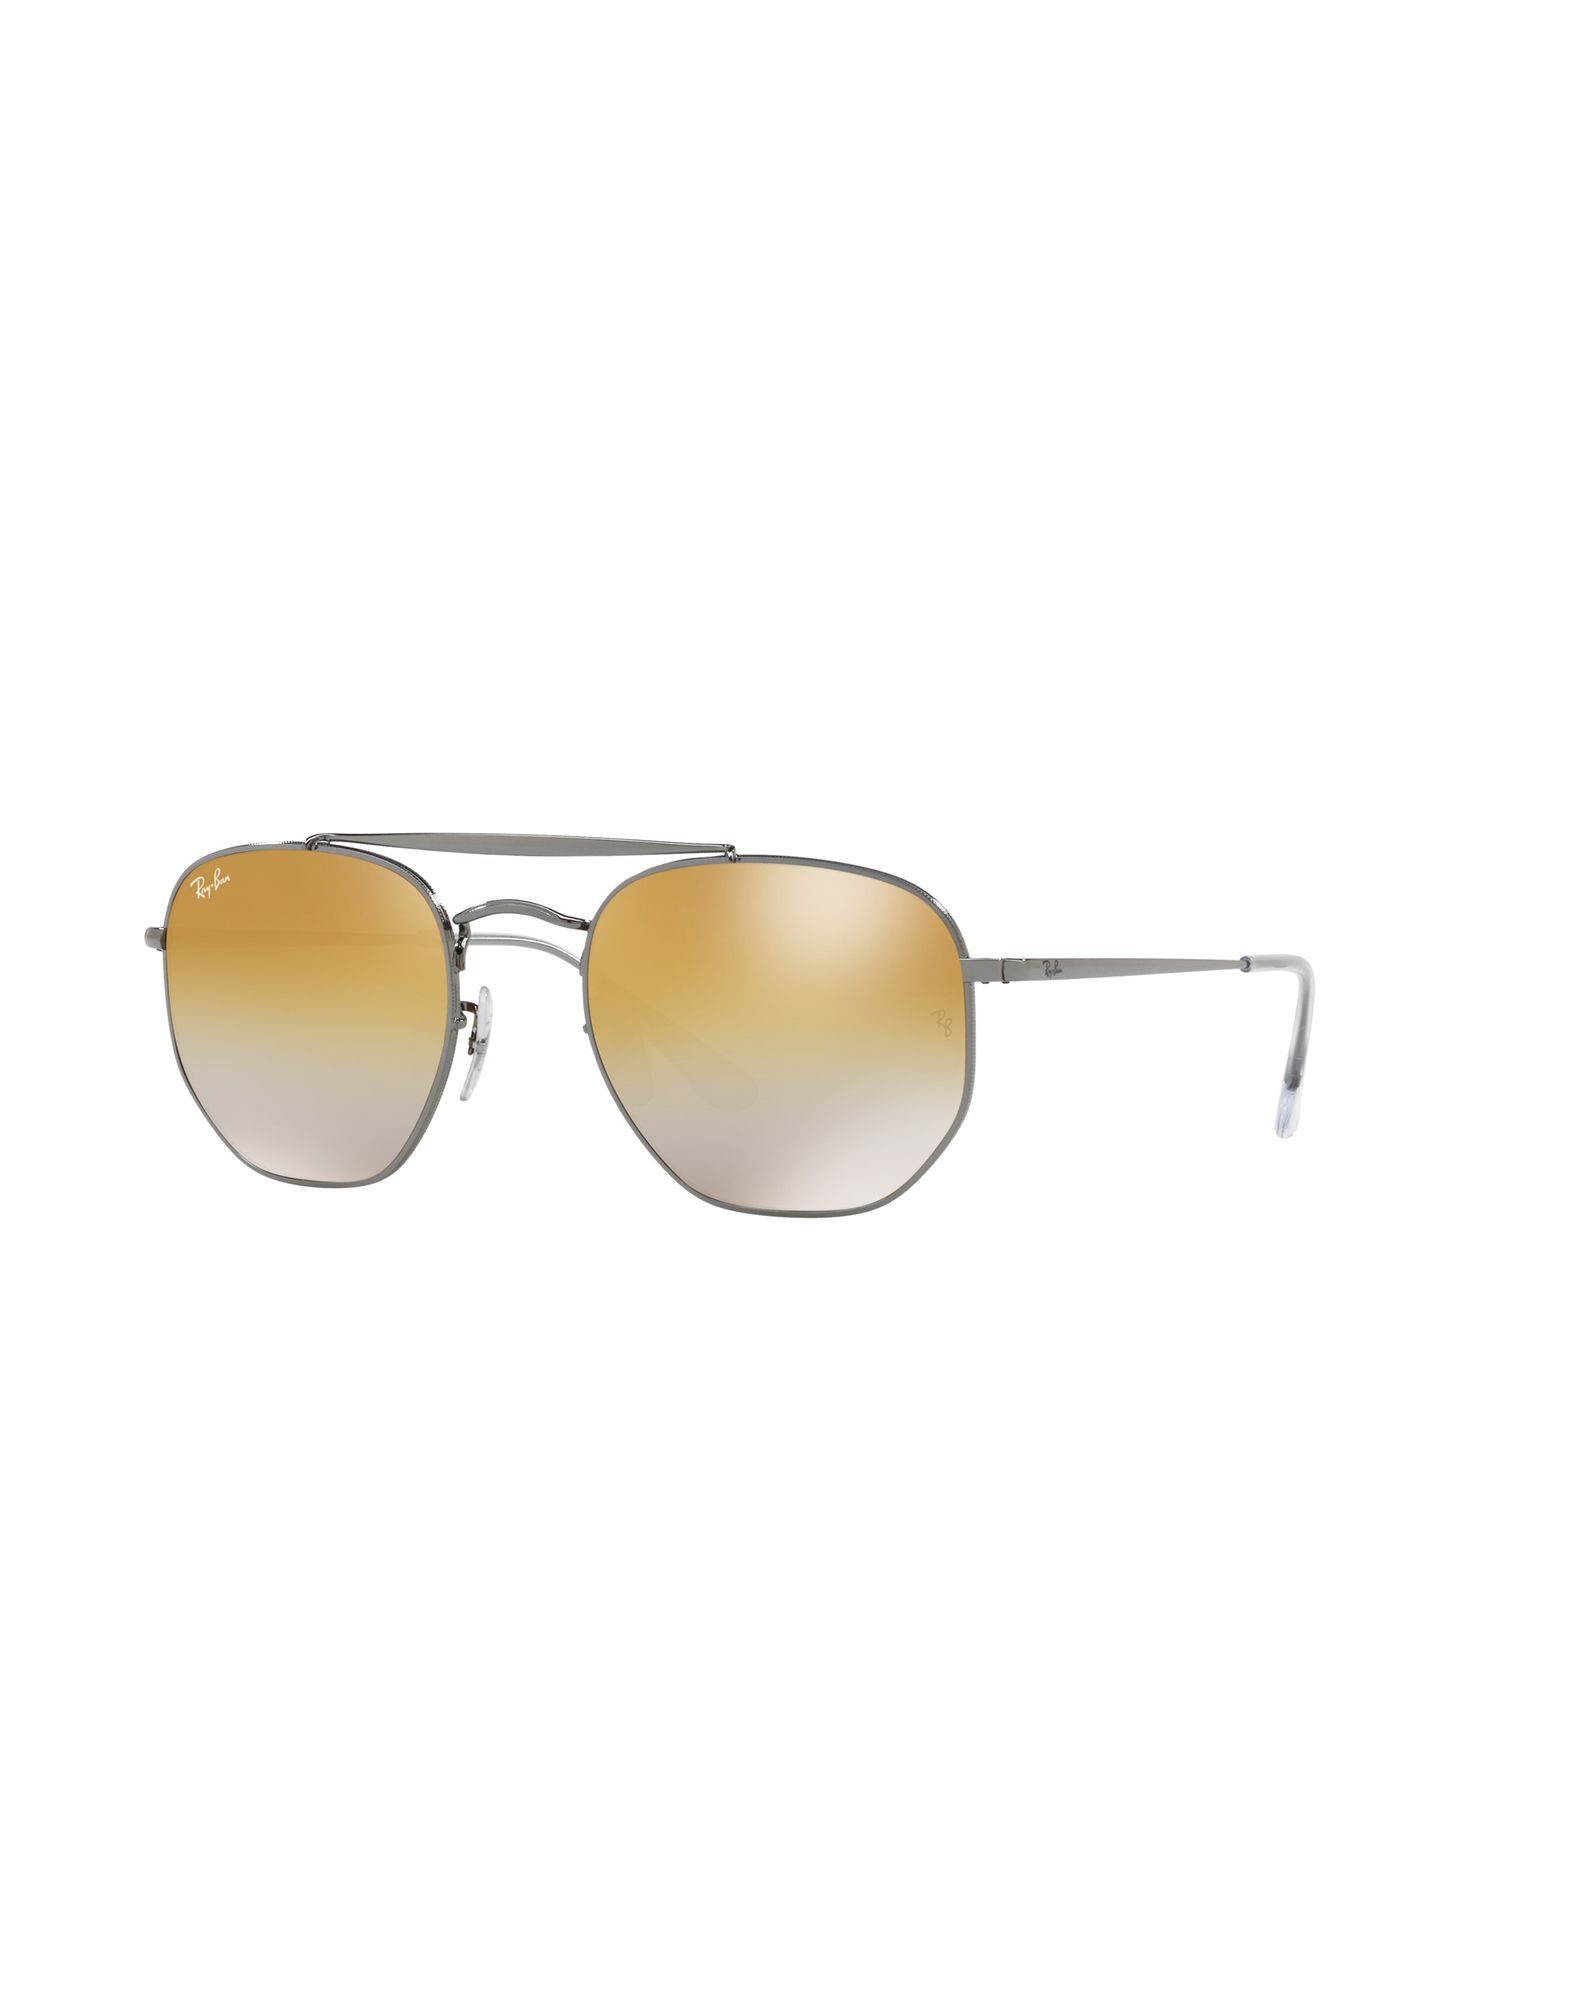 Occhiali Da Sole Ray-Ban Rb3648 The Marshal - Uomo - Acquista online su